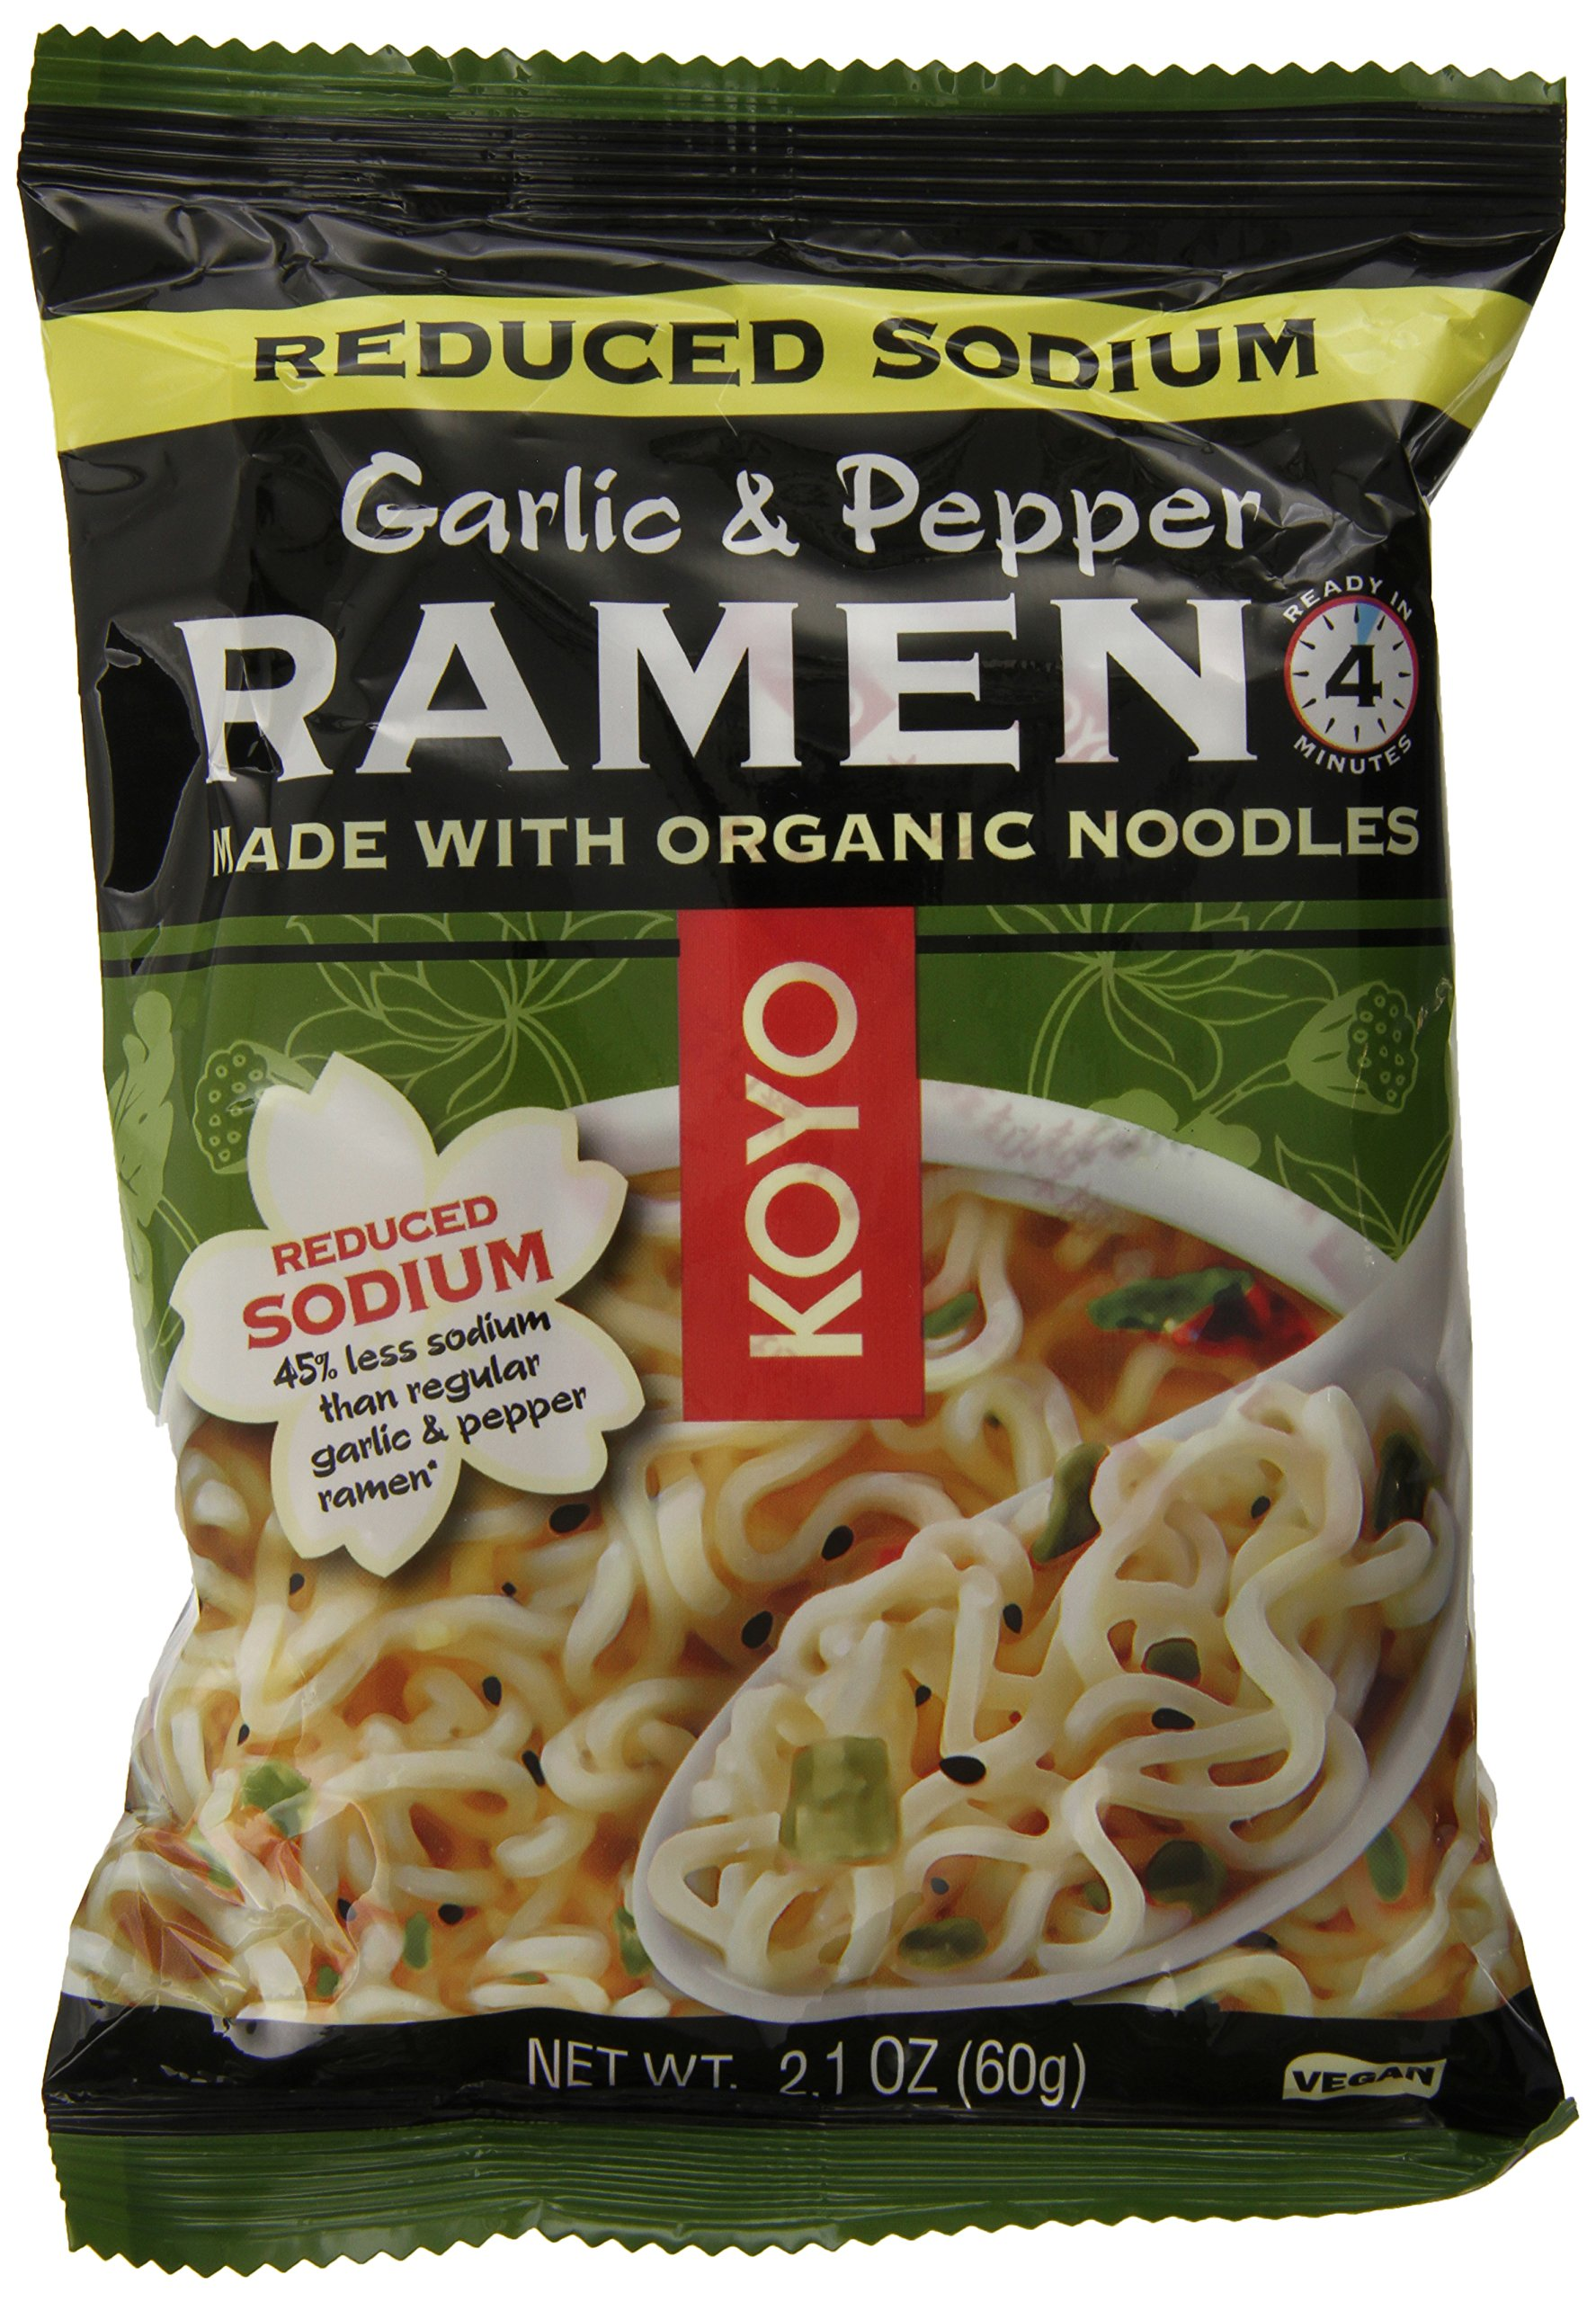 KOYO Reduced Sodium Garlic and Pepper Ramen Made with Organic Noodles, 2.1 Ounce (Pack of 12) by Koyo (Image #1)